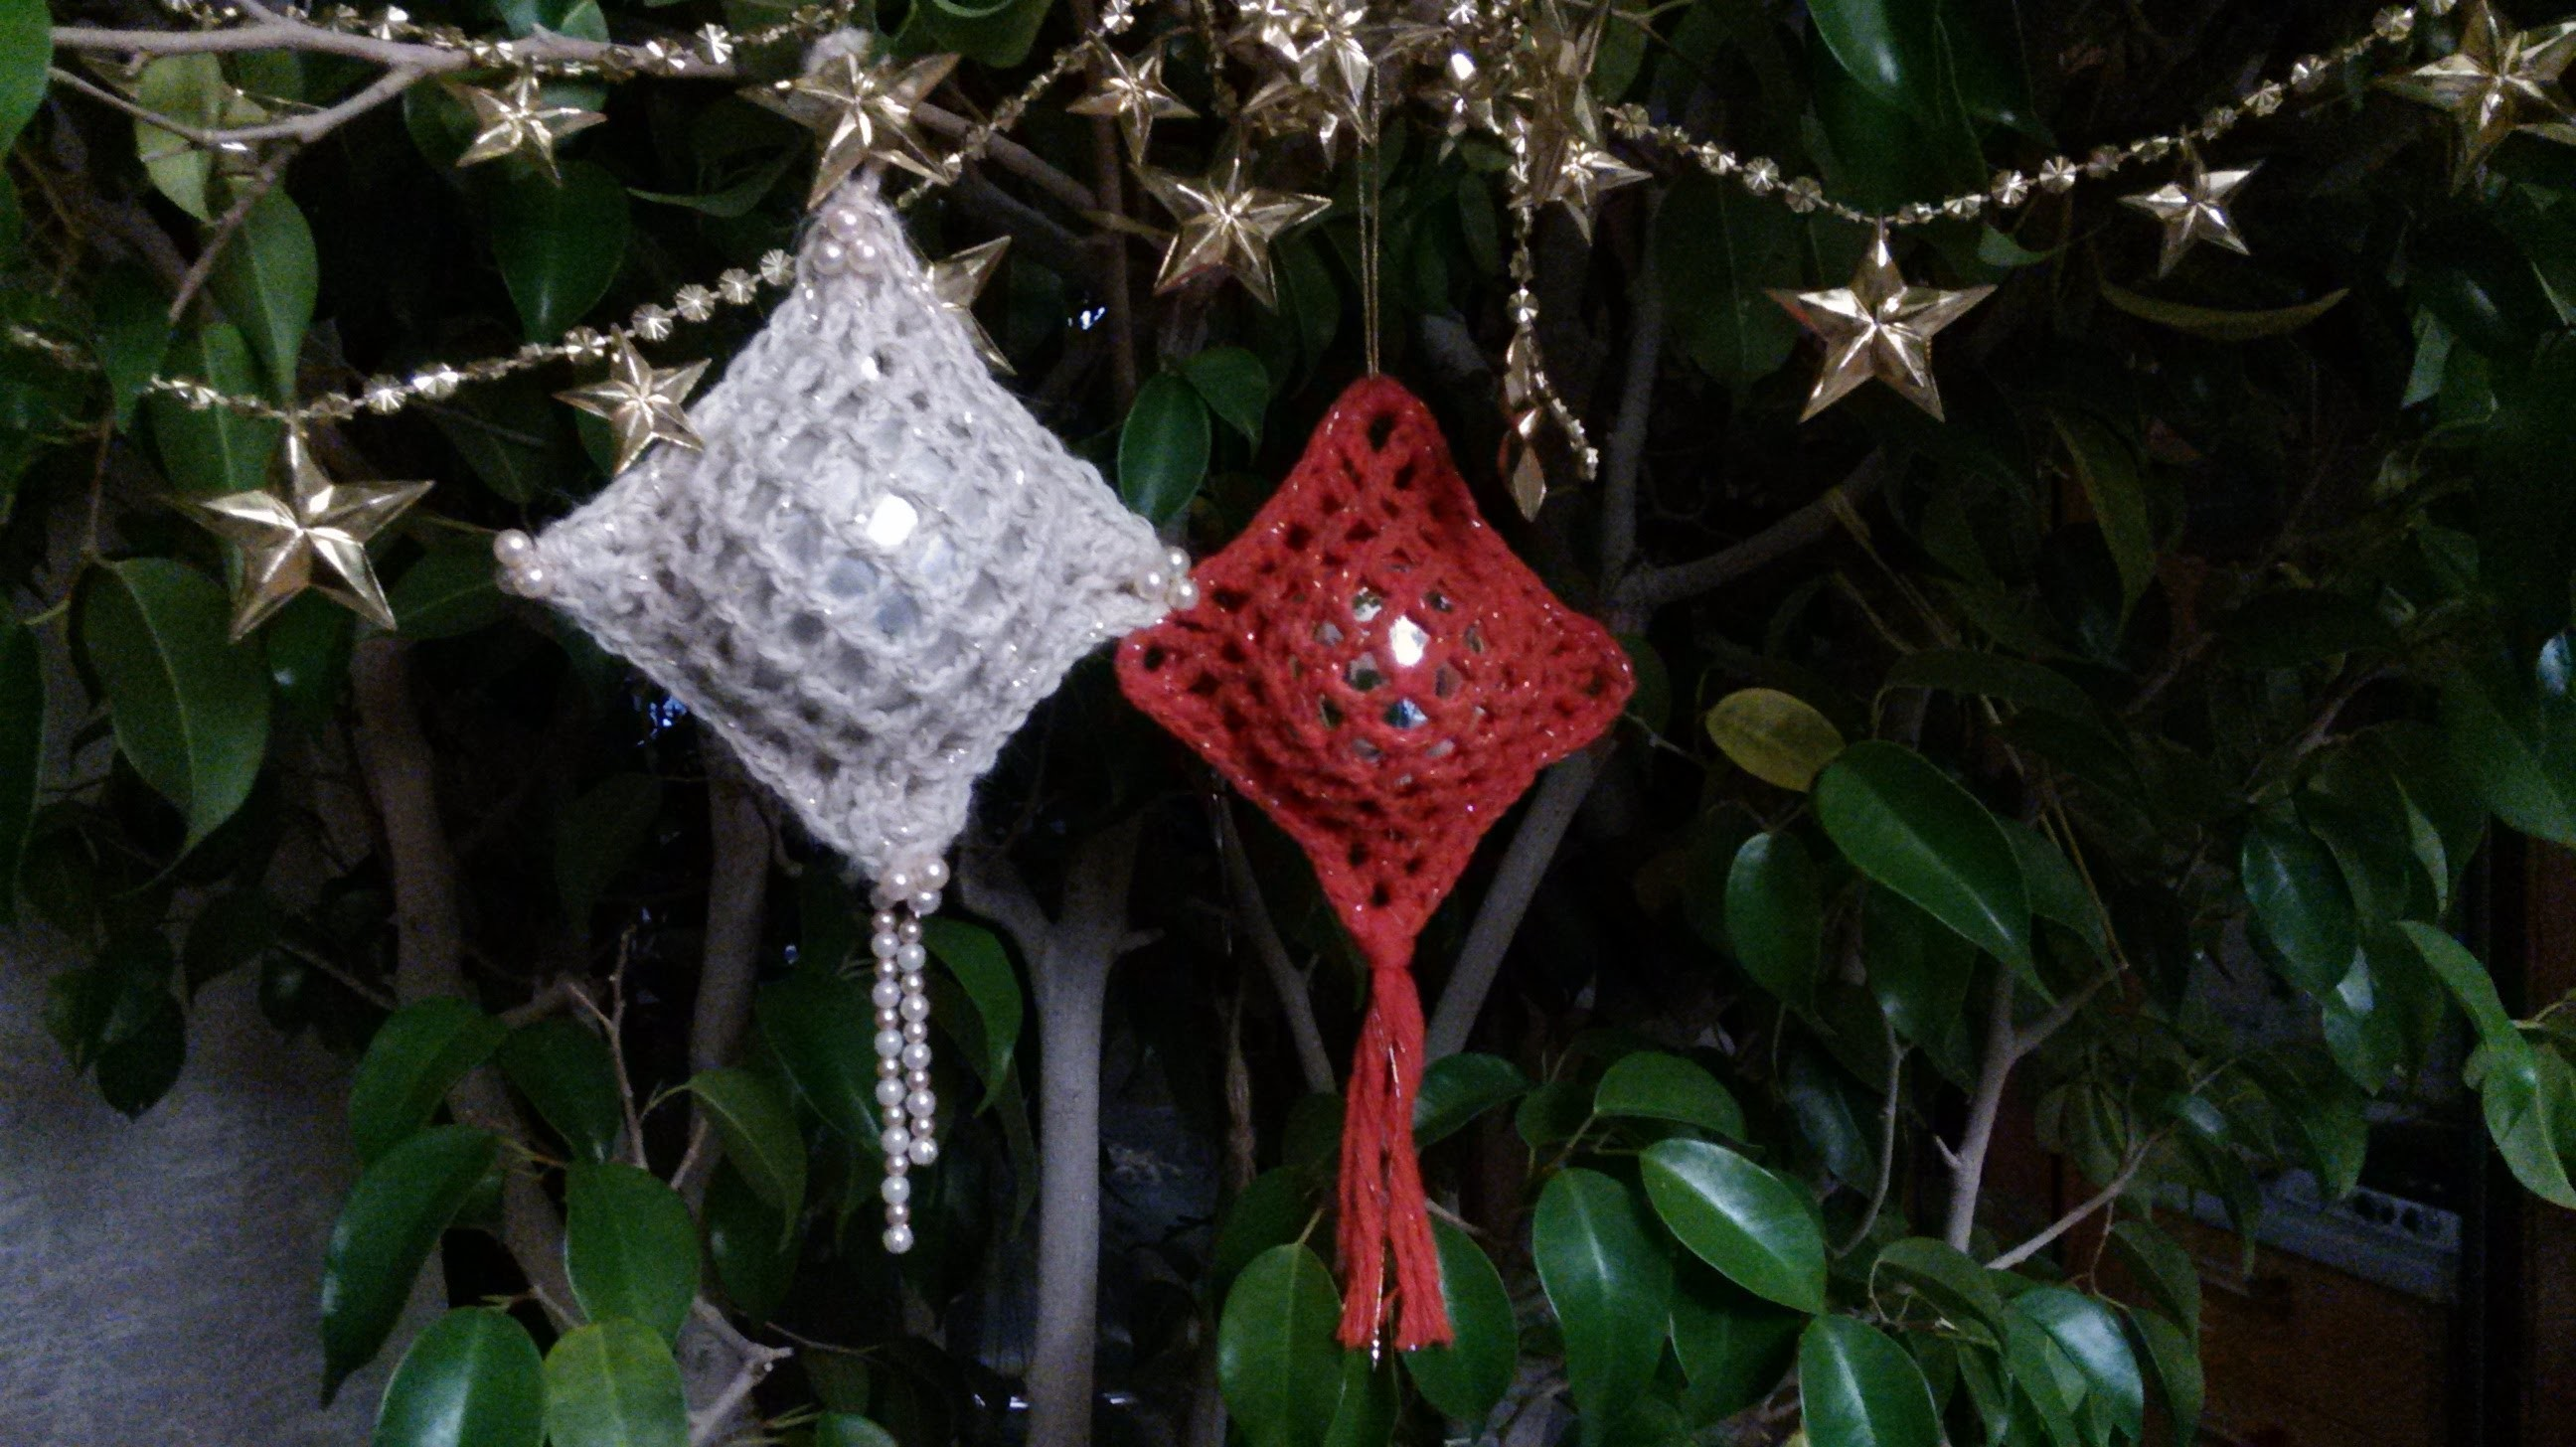 Palla di natale ricoperta all'uncinetto (crochet christmas ball)